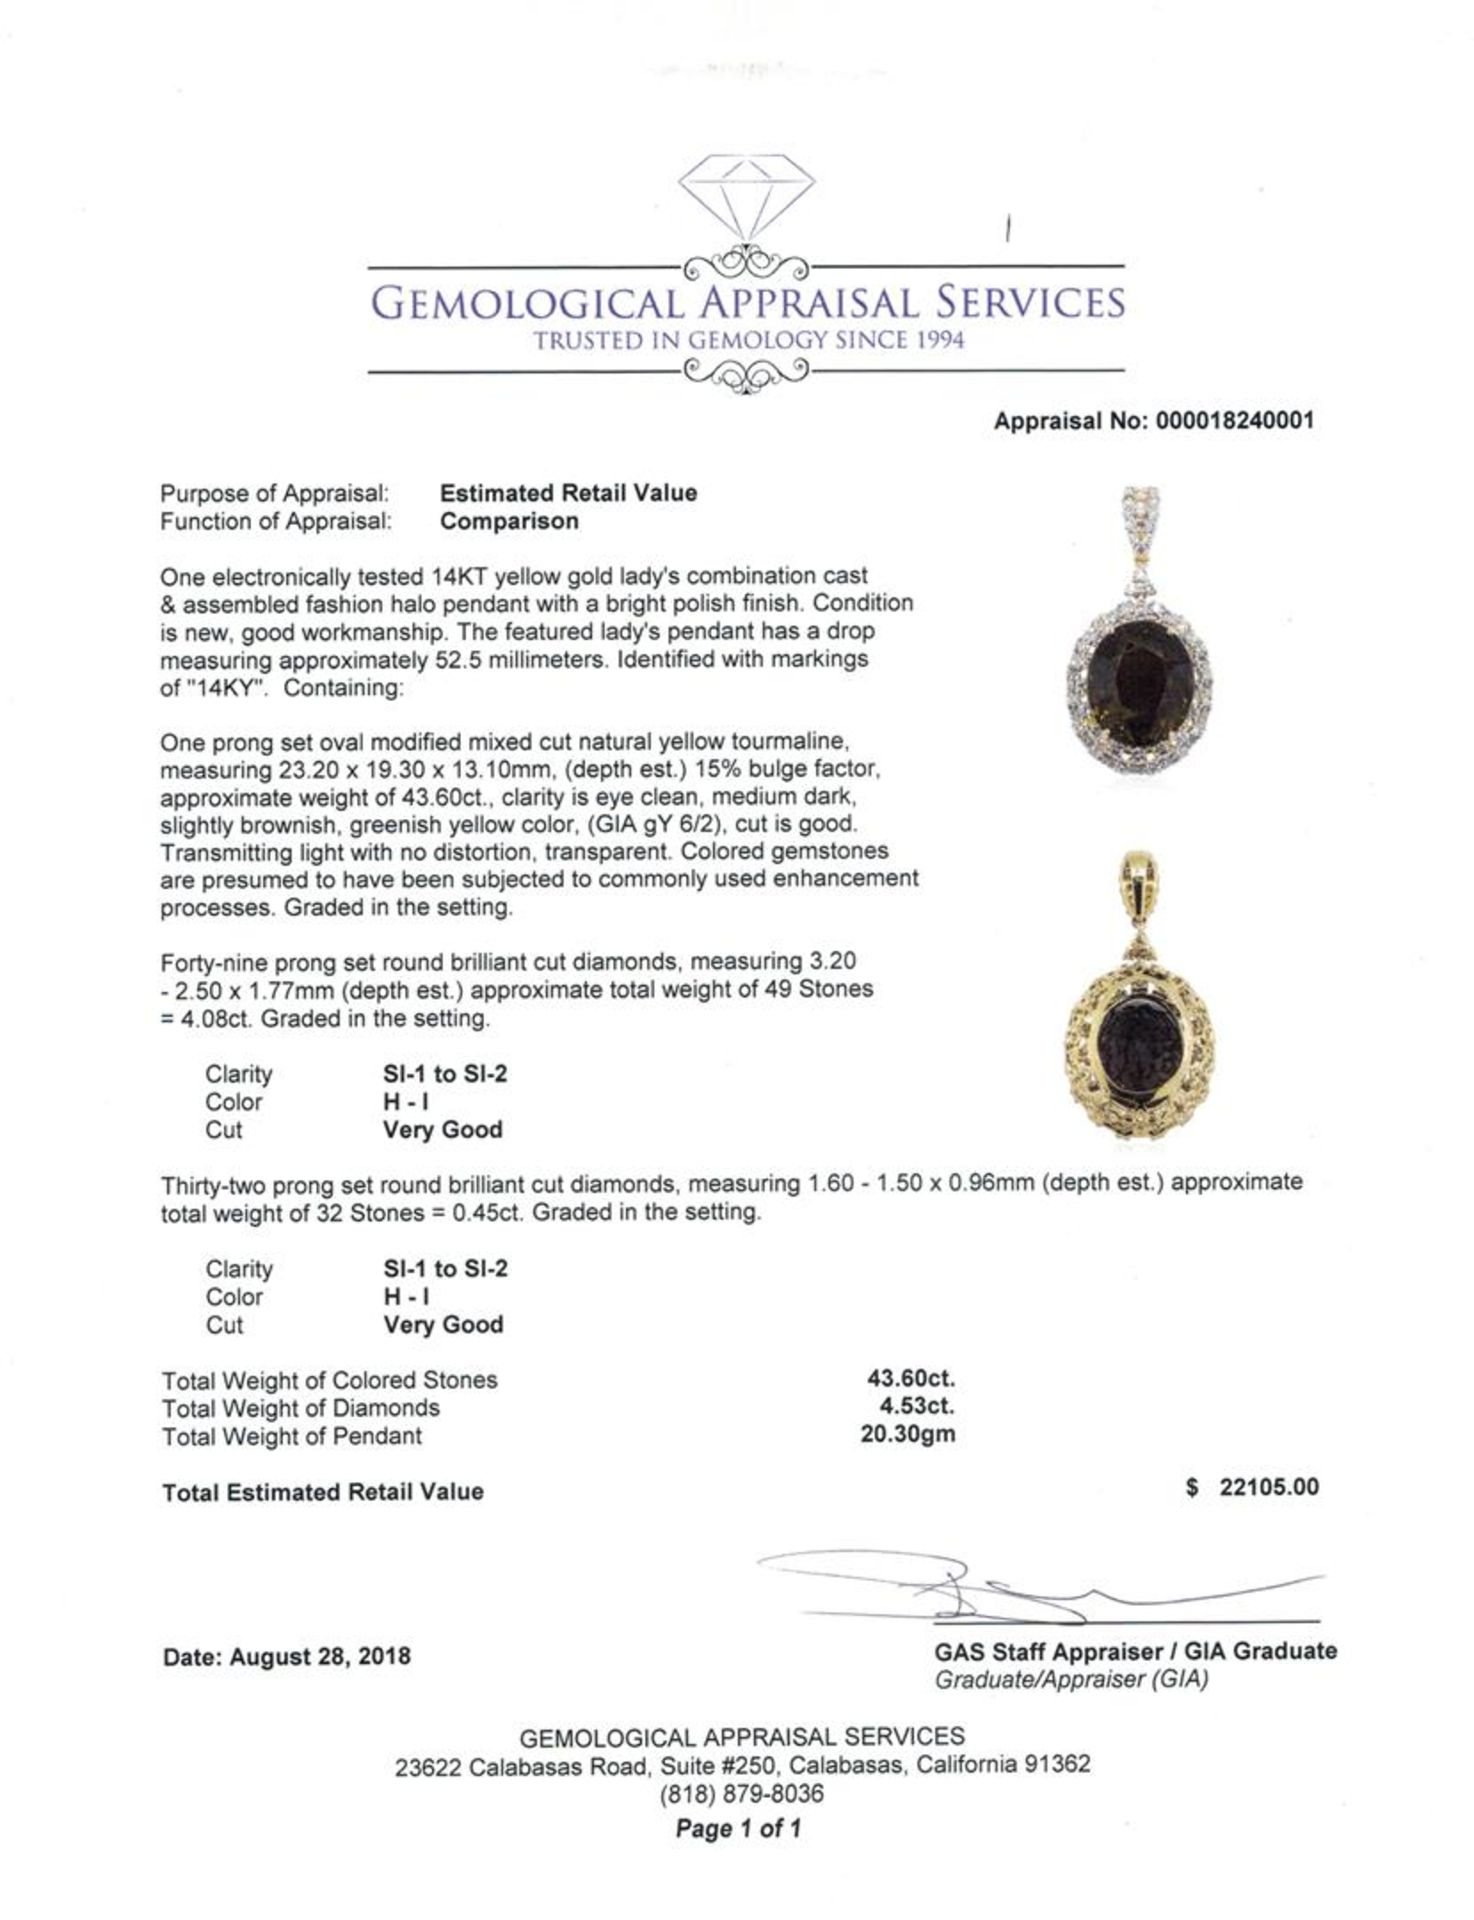 48.13 ctw Oval Mixed Yellow Tourmaline And Round Brilliant Cut Diamond Pendant - - Image 3 of 3